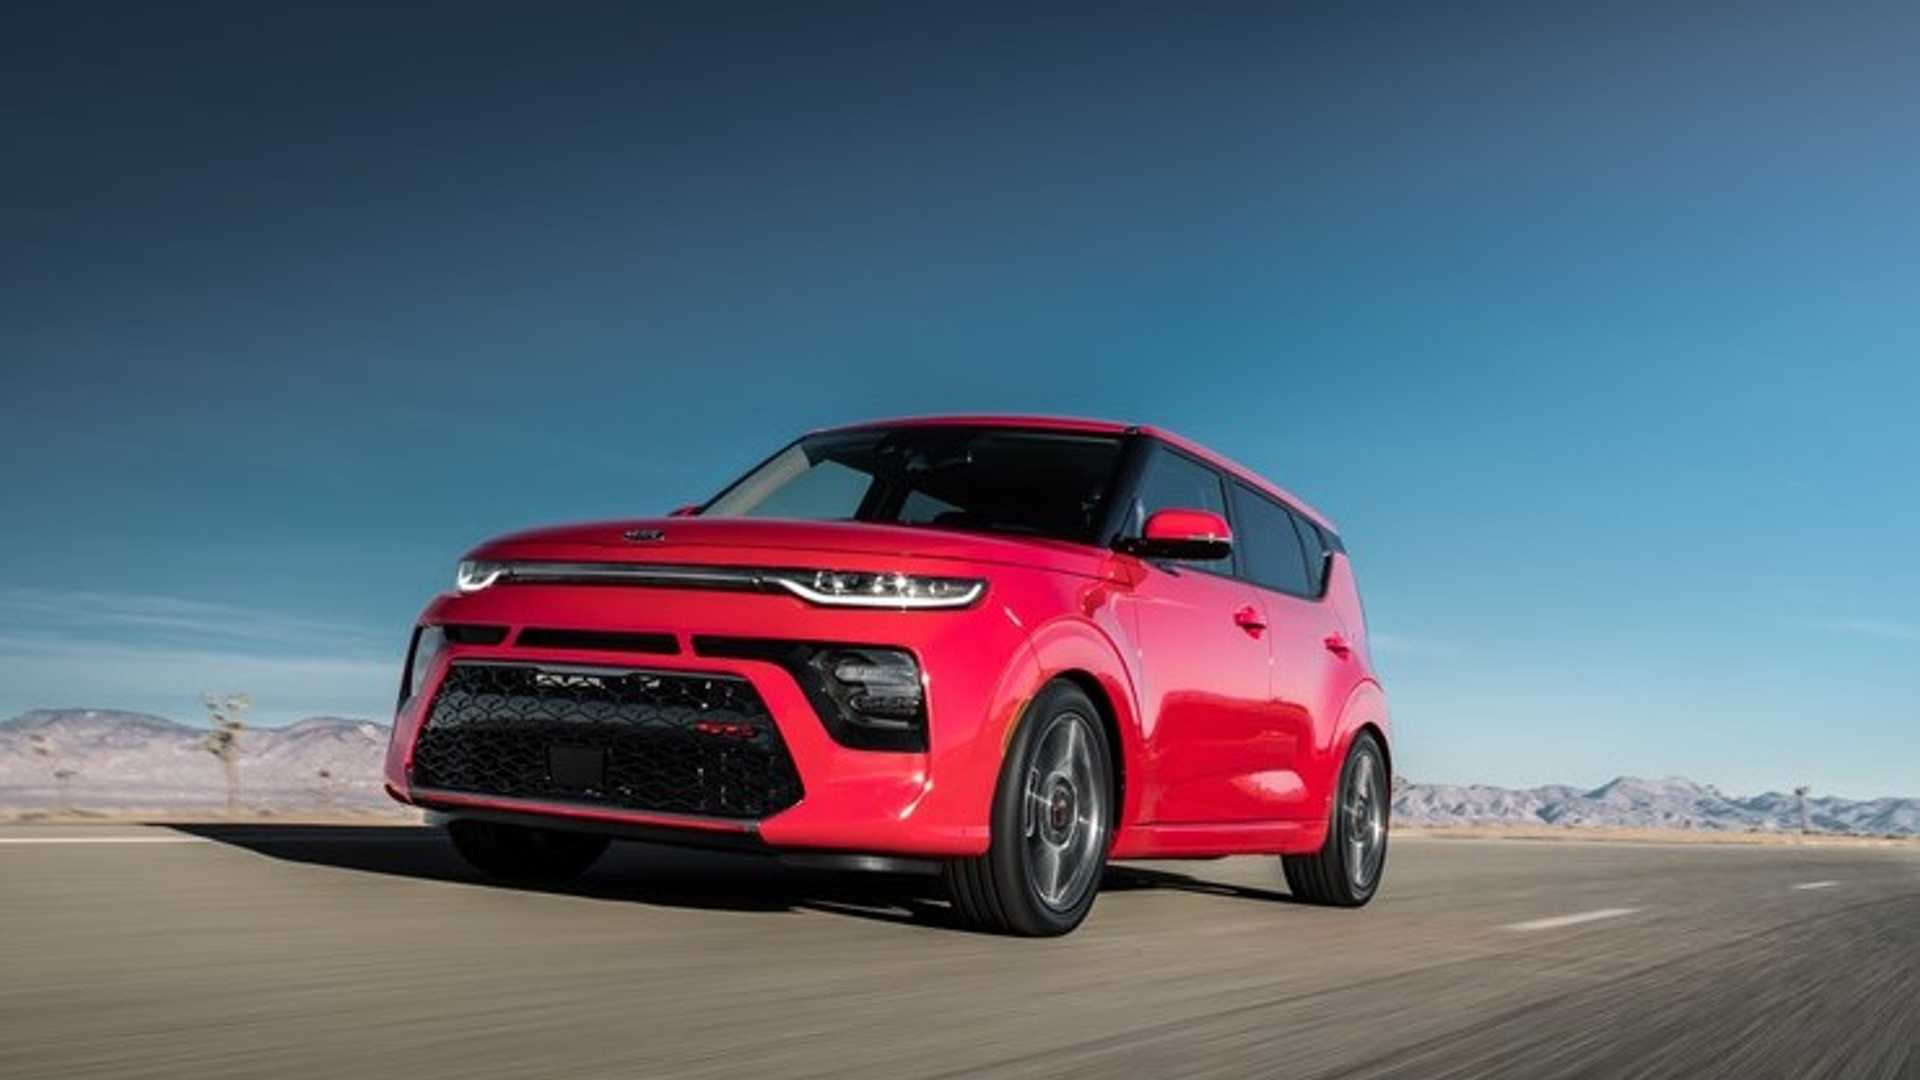 Most Expensive 2020 Kia Soul Costs $30,825 - 2022 Kia Soul Gt-Line 1.6 Turbo Transmission Change, Release Date